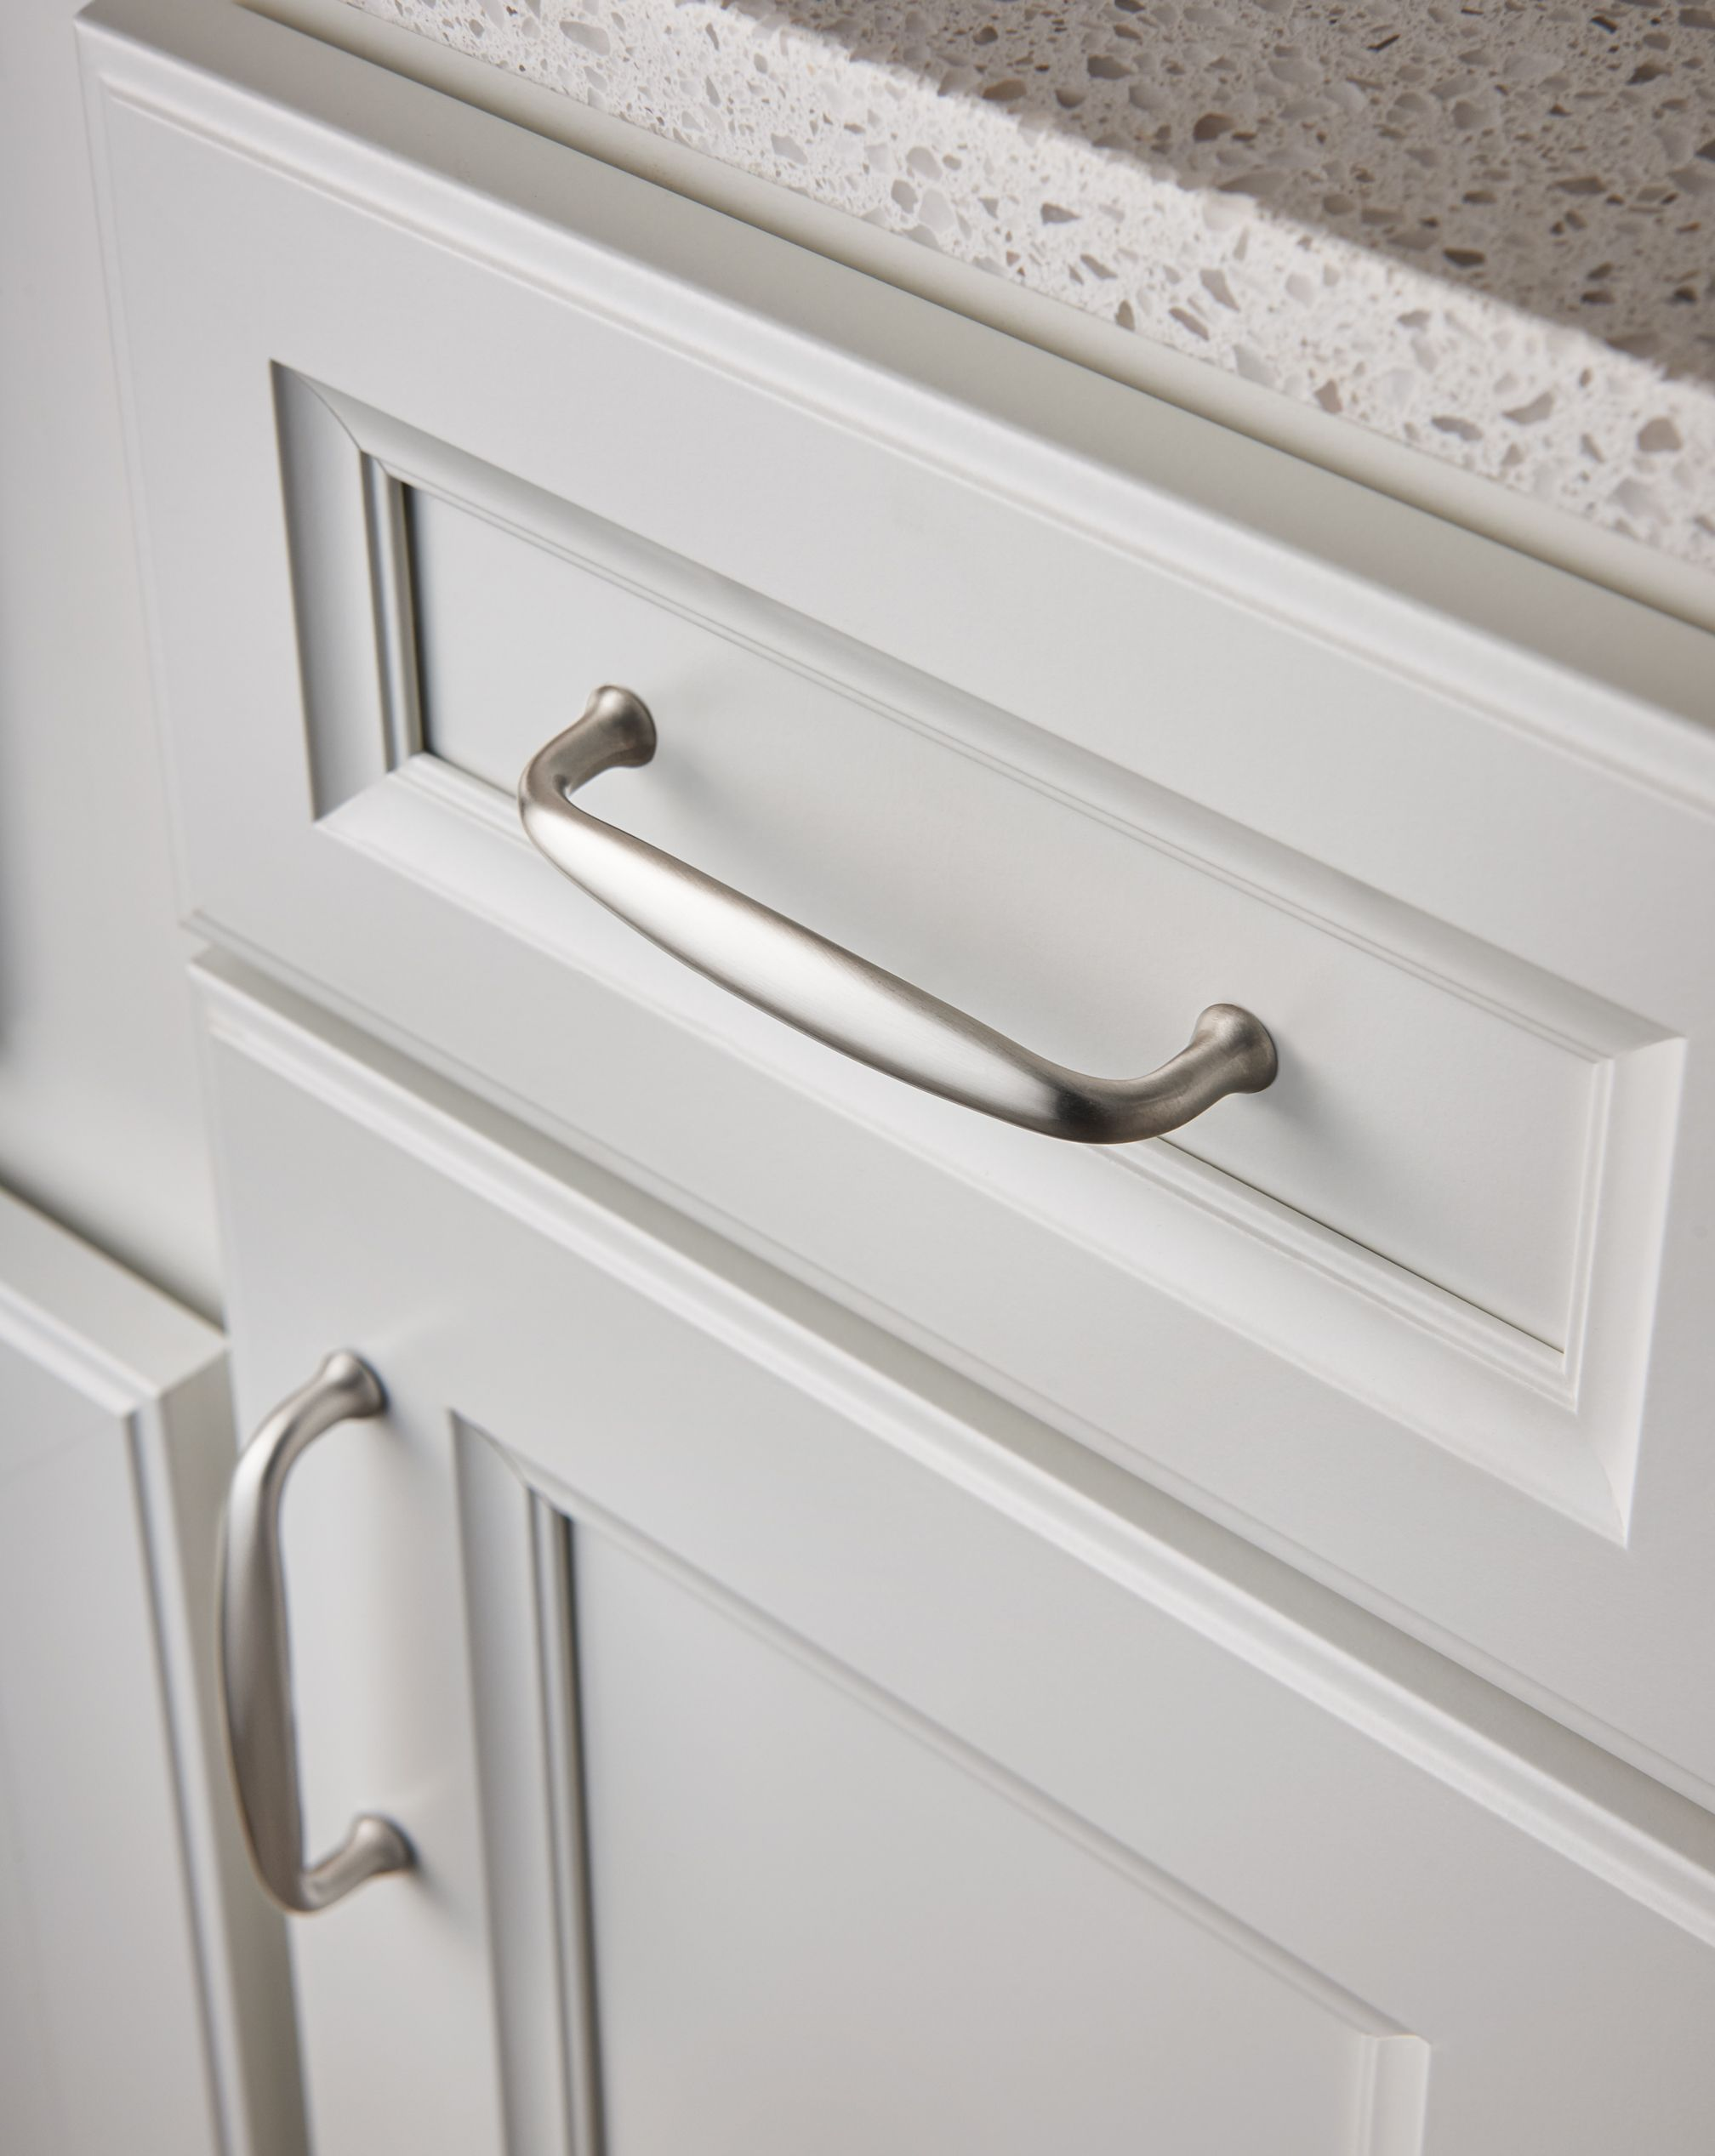 M1279 4 Cc Pull In Brushed Satin Nickel The Art Of